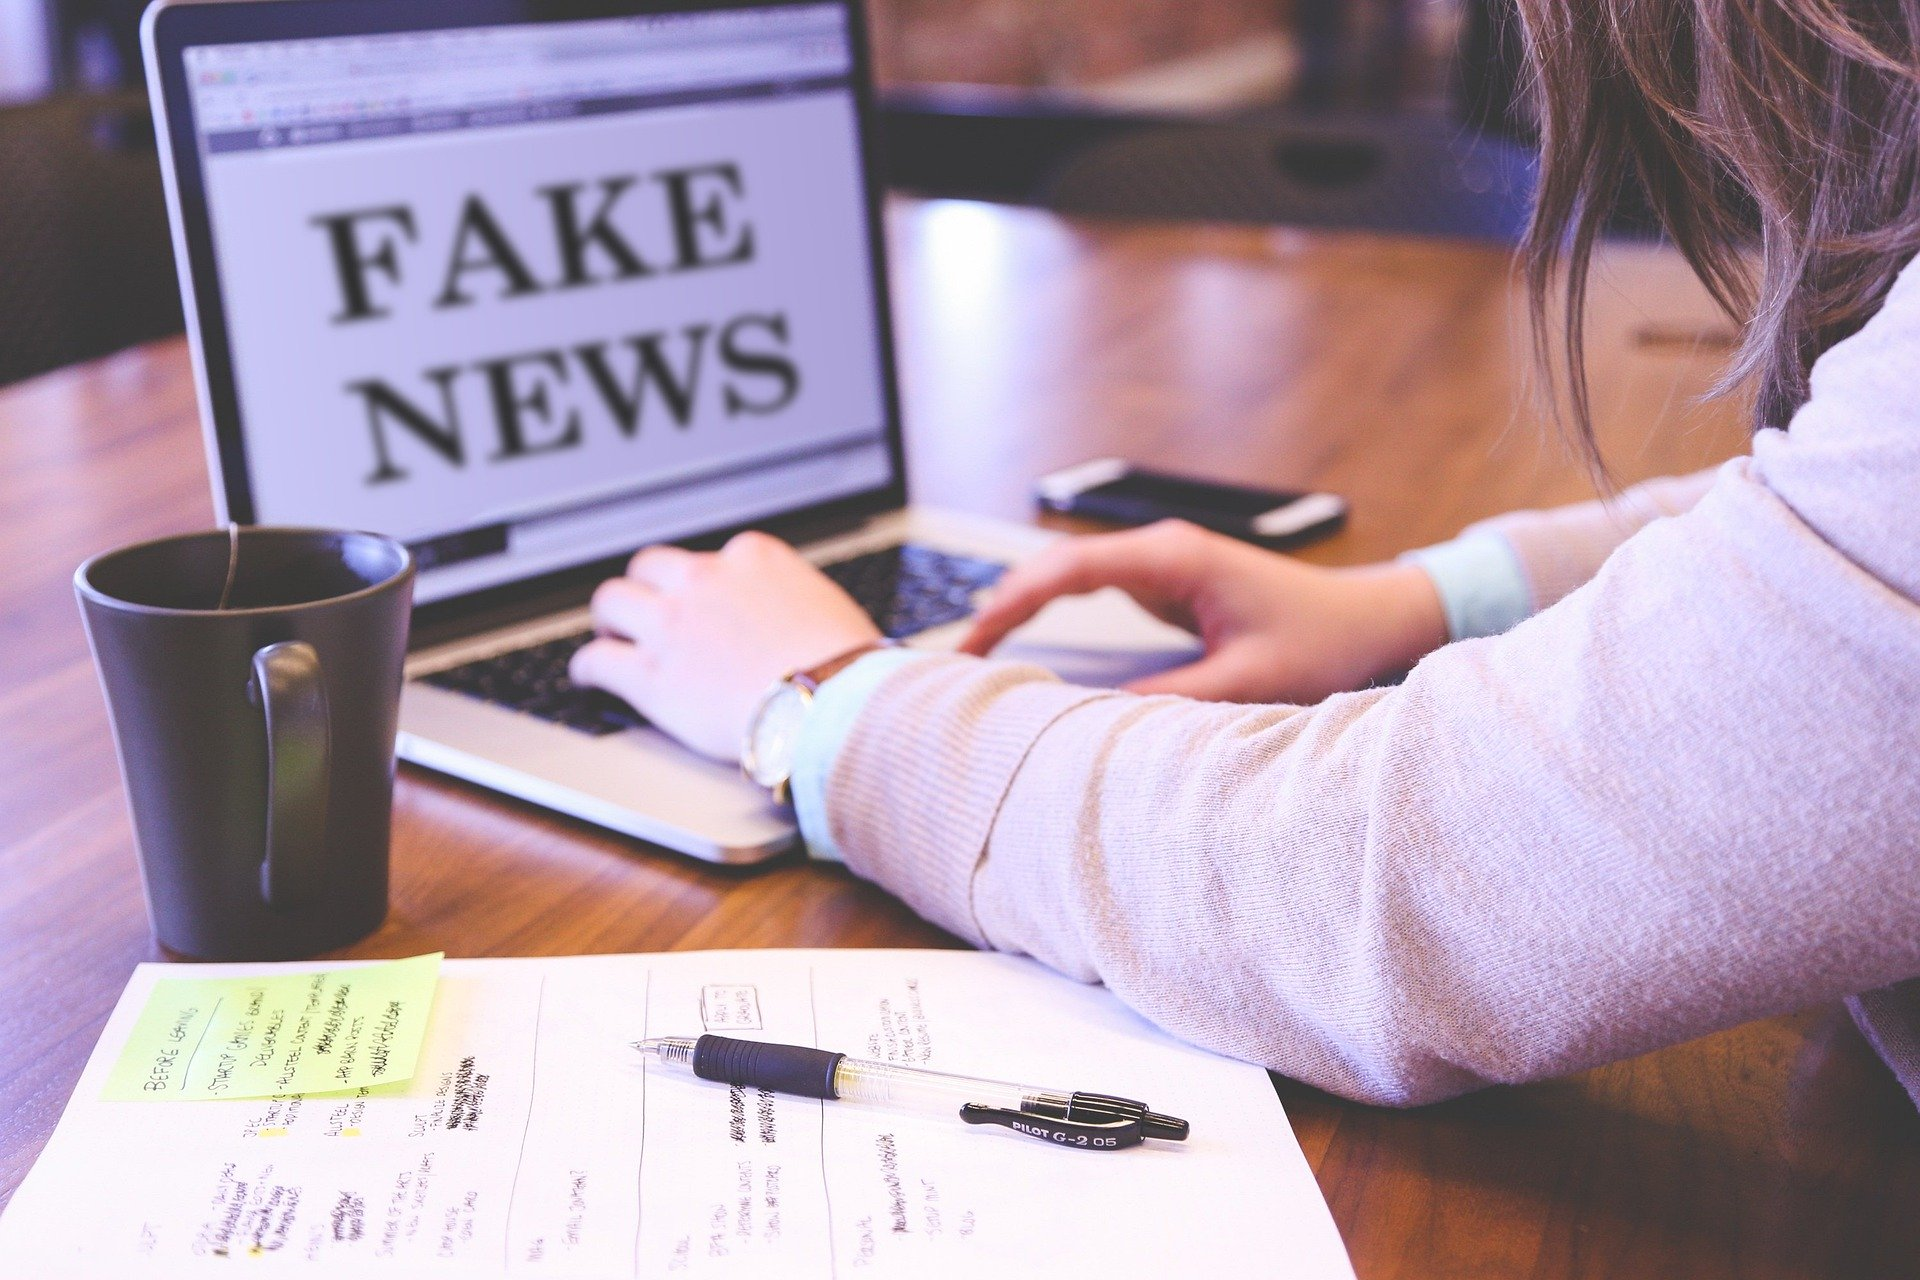 Tema: Los Fake news y su incidencia en la comunicación ambiental